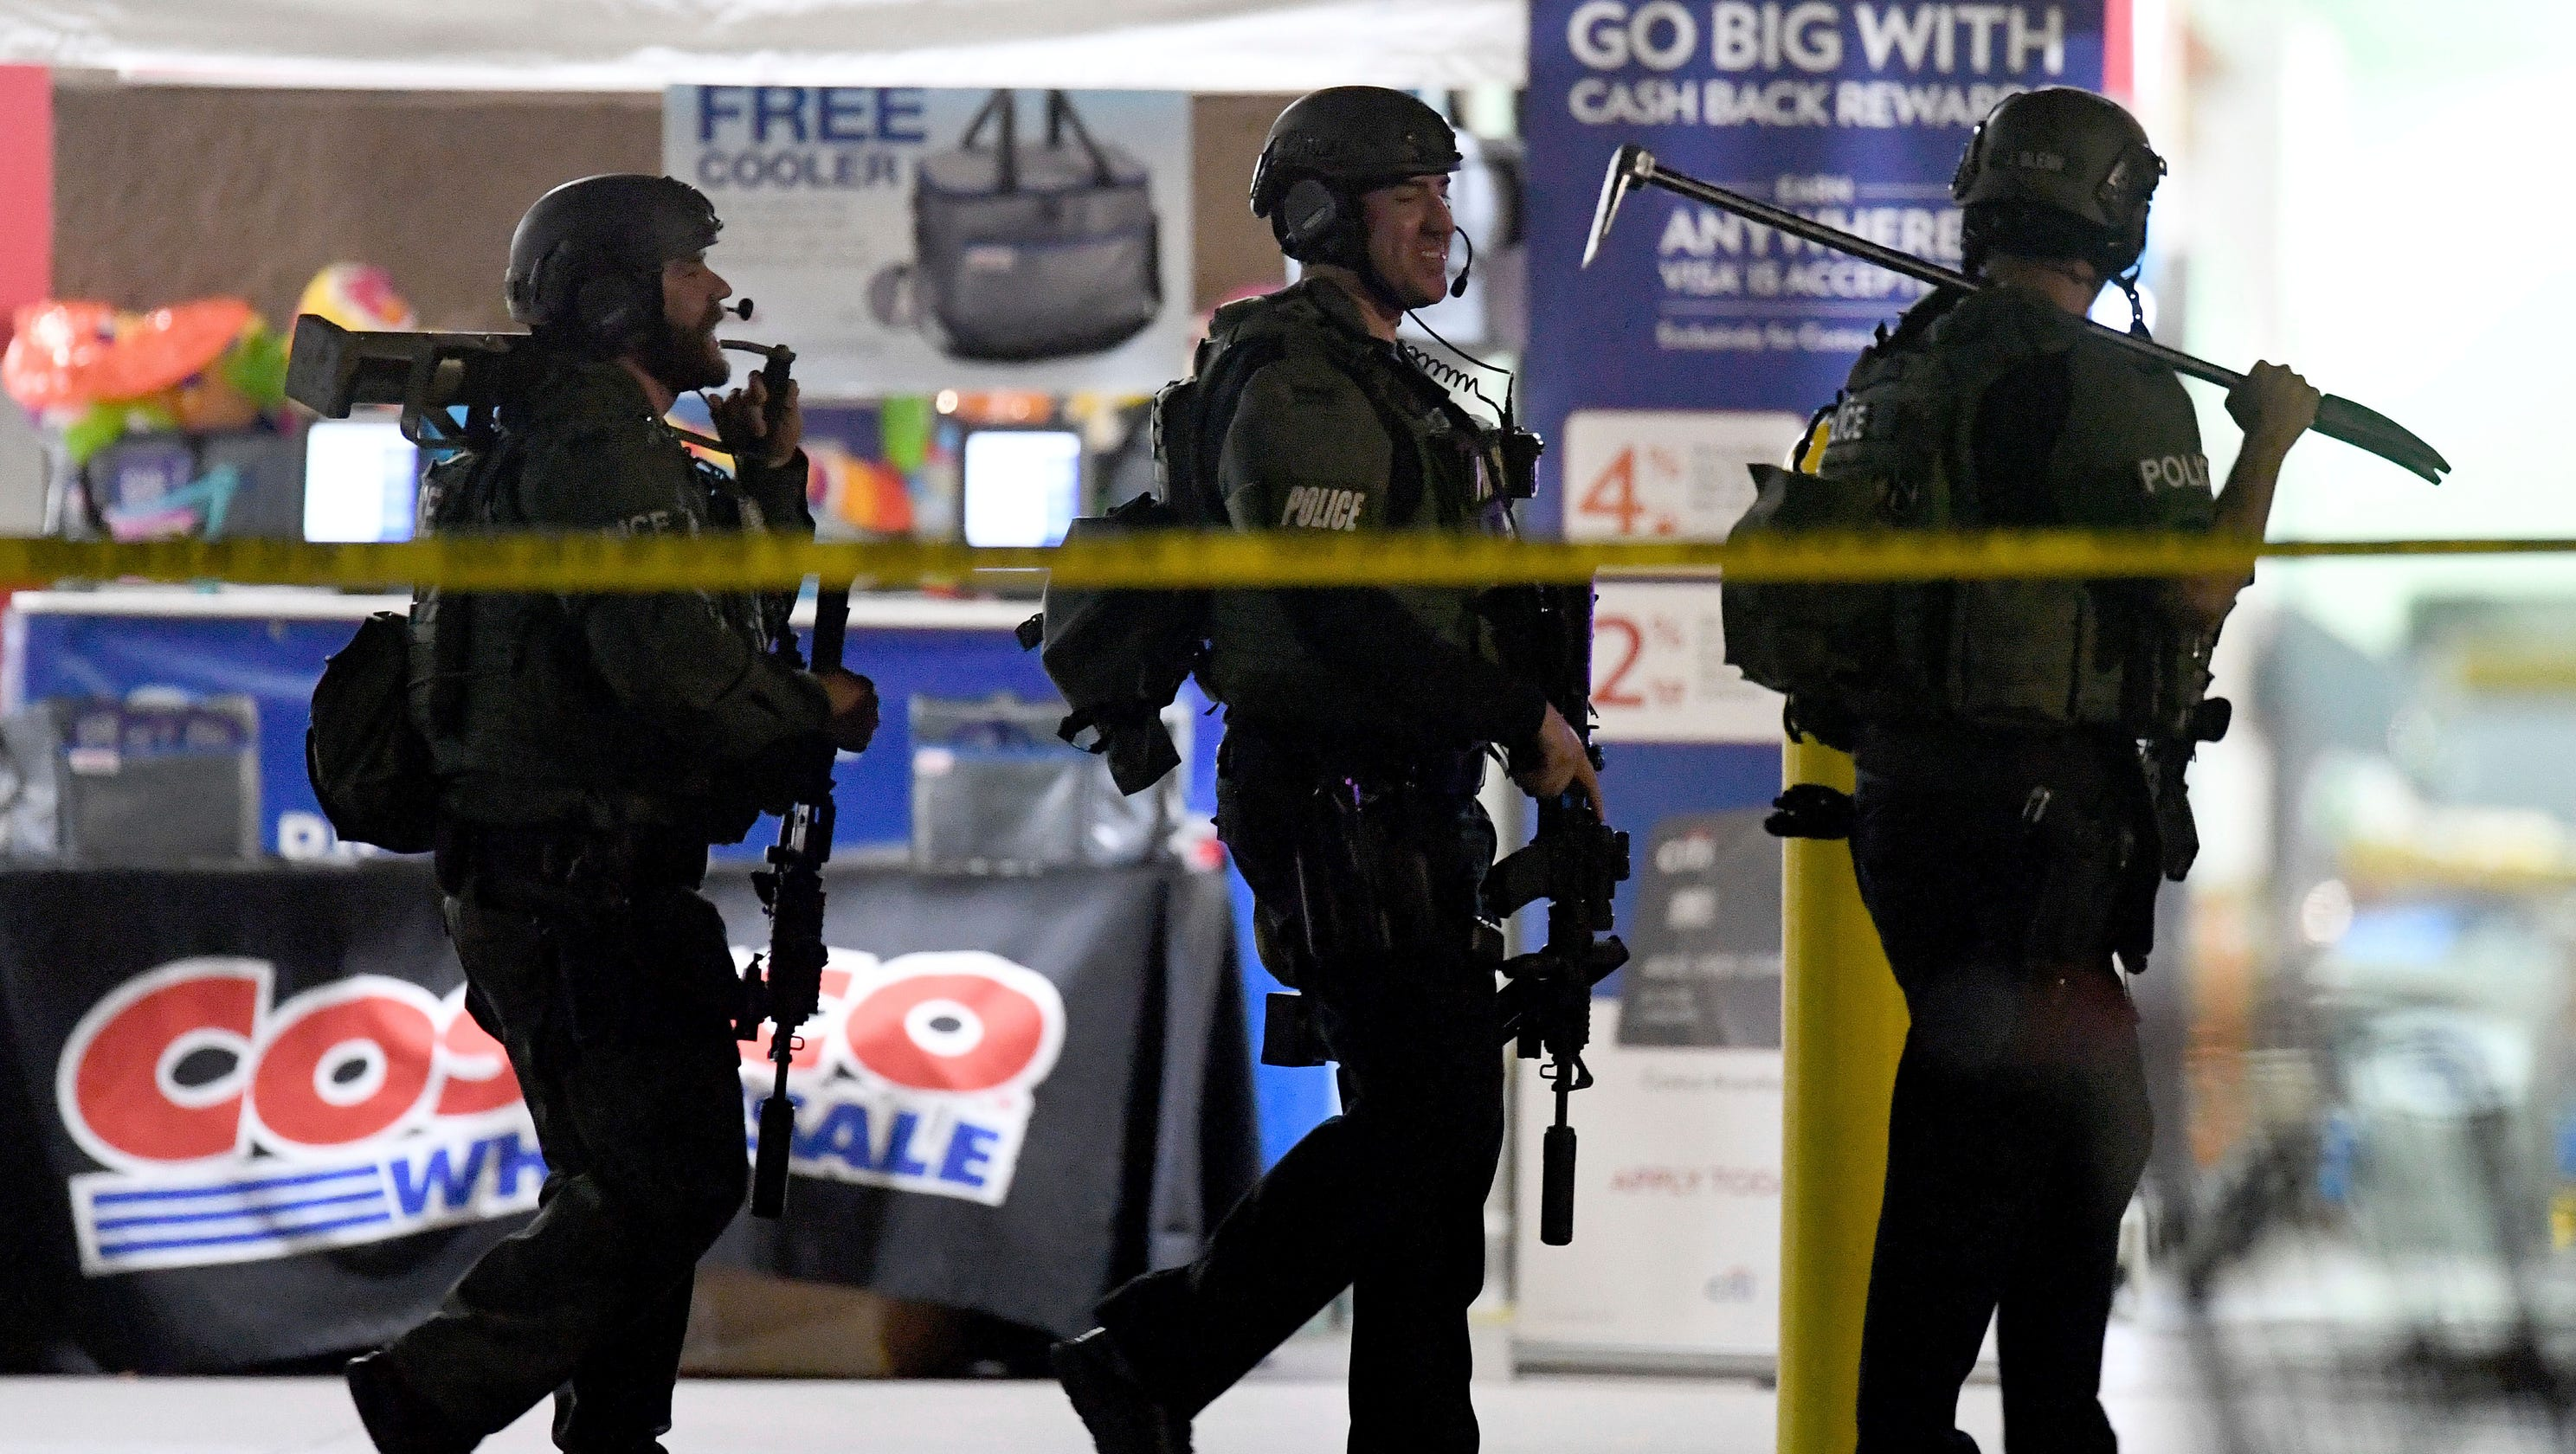 Shooting at Costco: Off-duty LAPD officer fired fatal shot after man hit  him at Costco